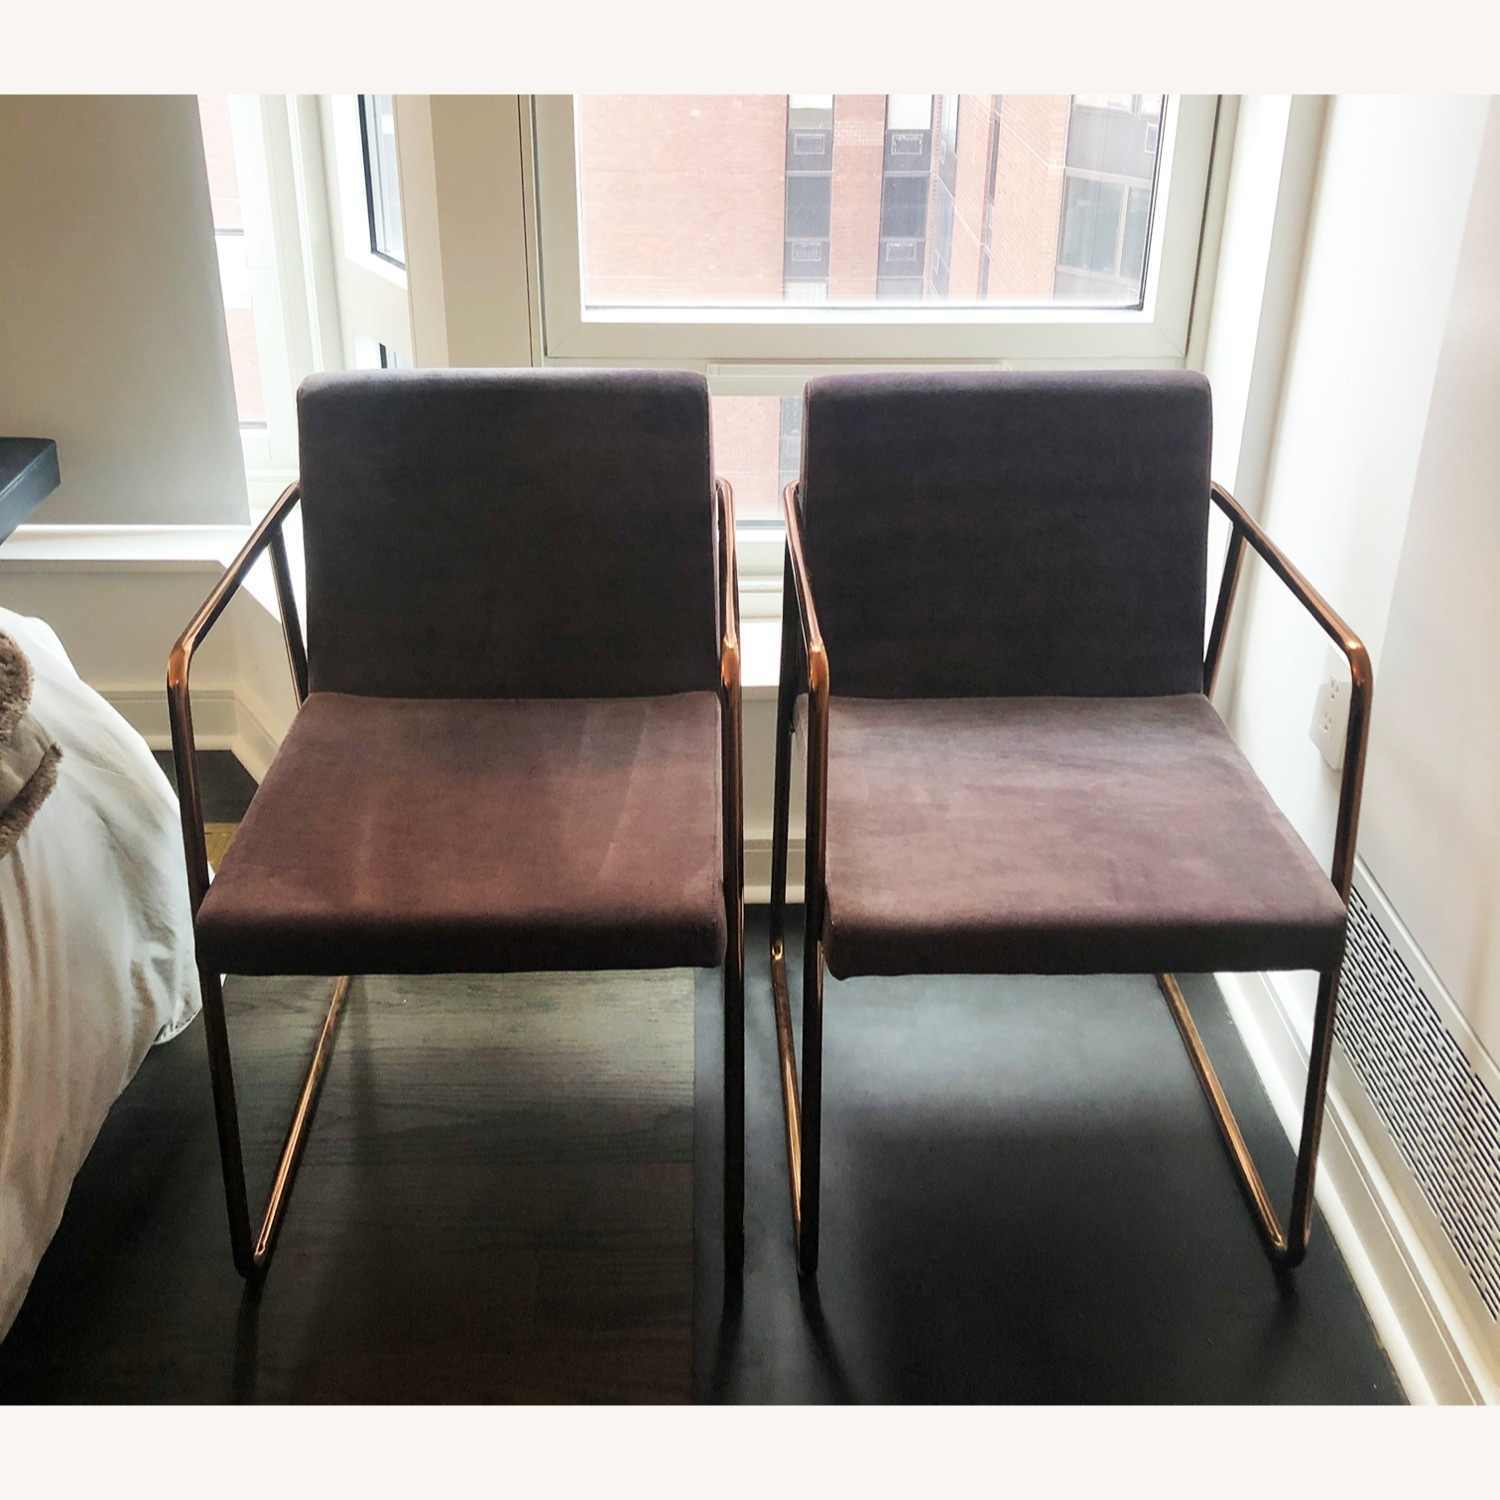 CB2 Rouka Dining Chairs - image-1